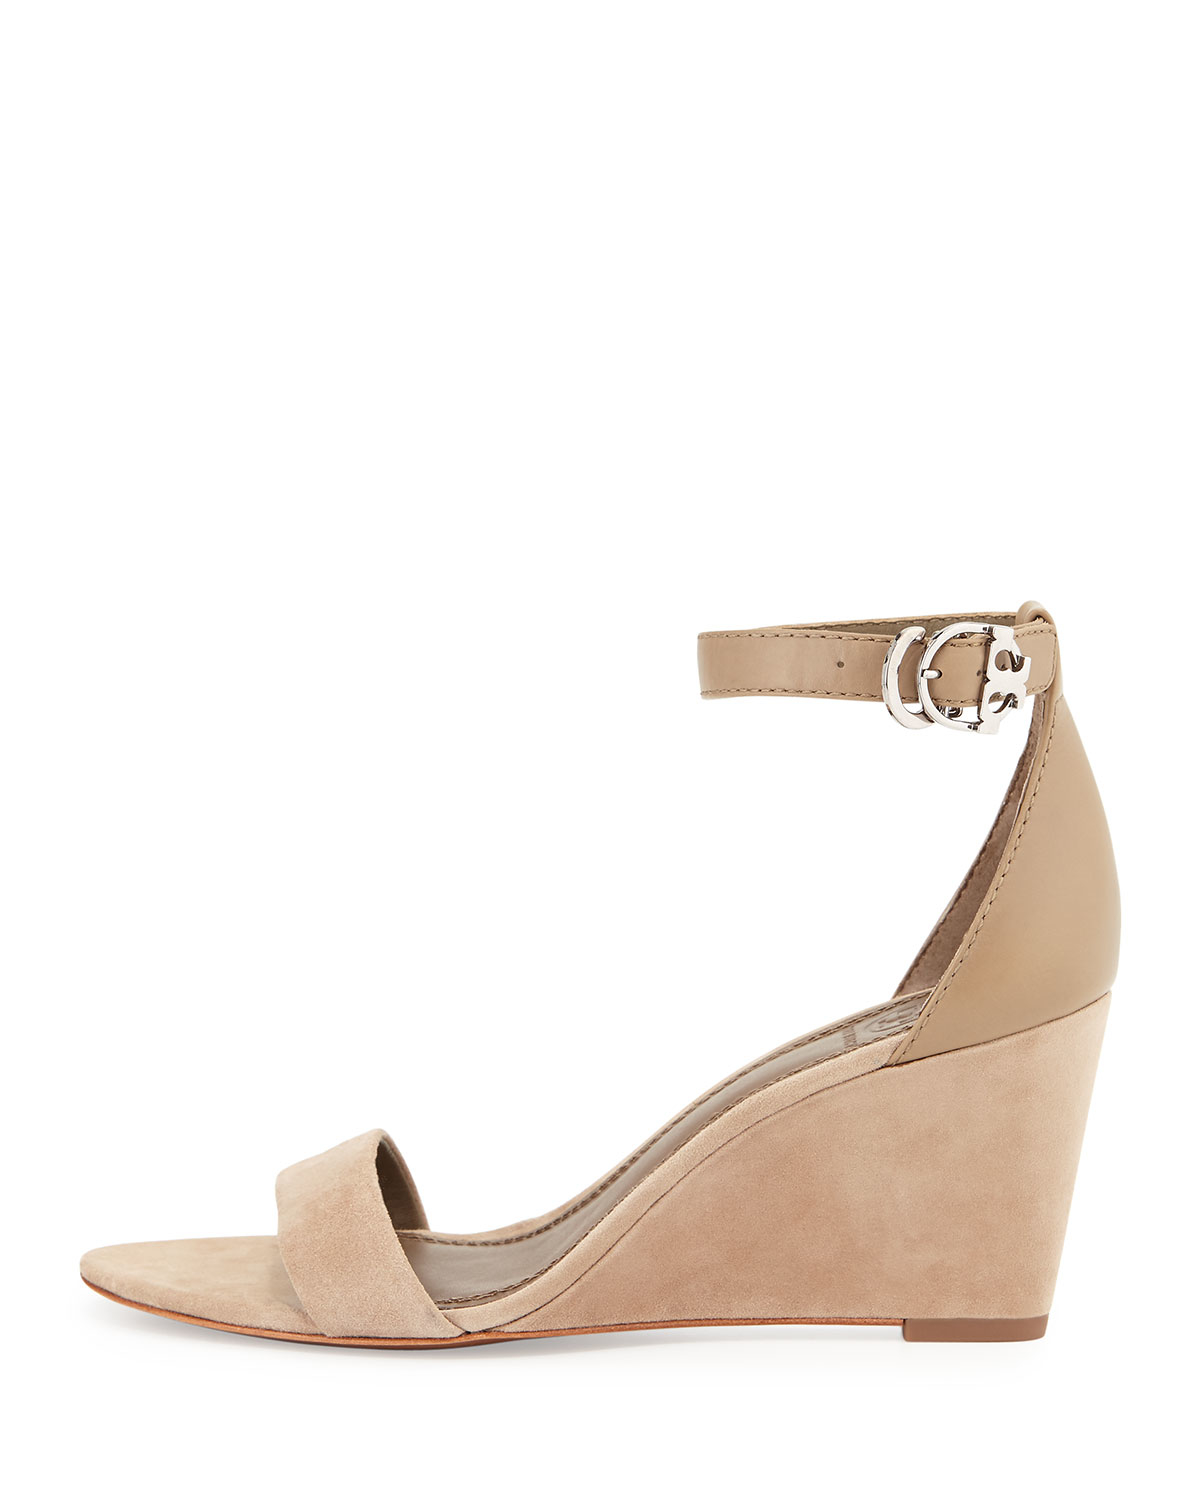 2aac80aa306e80 Lyst - Tory Burch Thames Suede Wedge Sandals in Natural